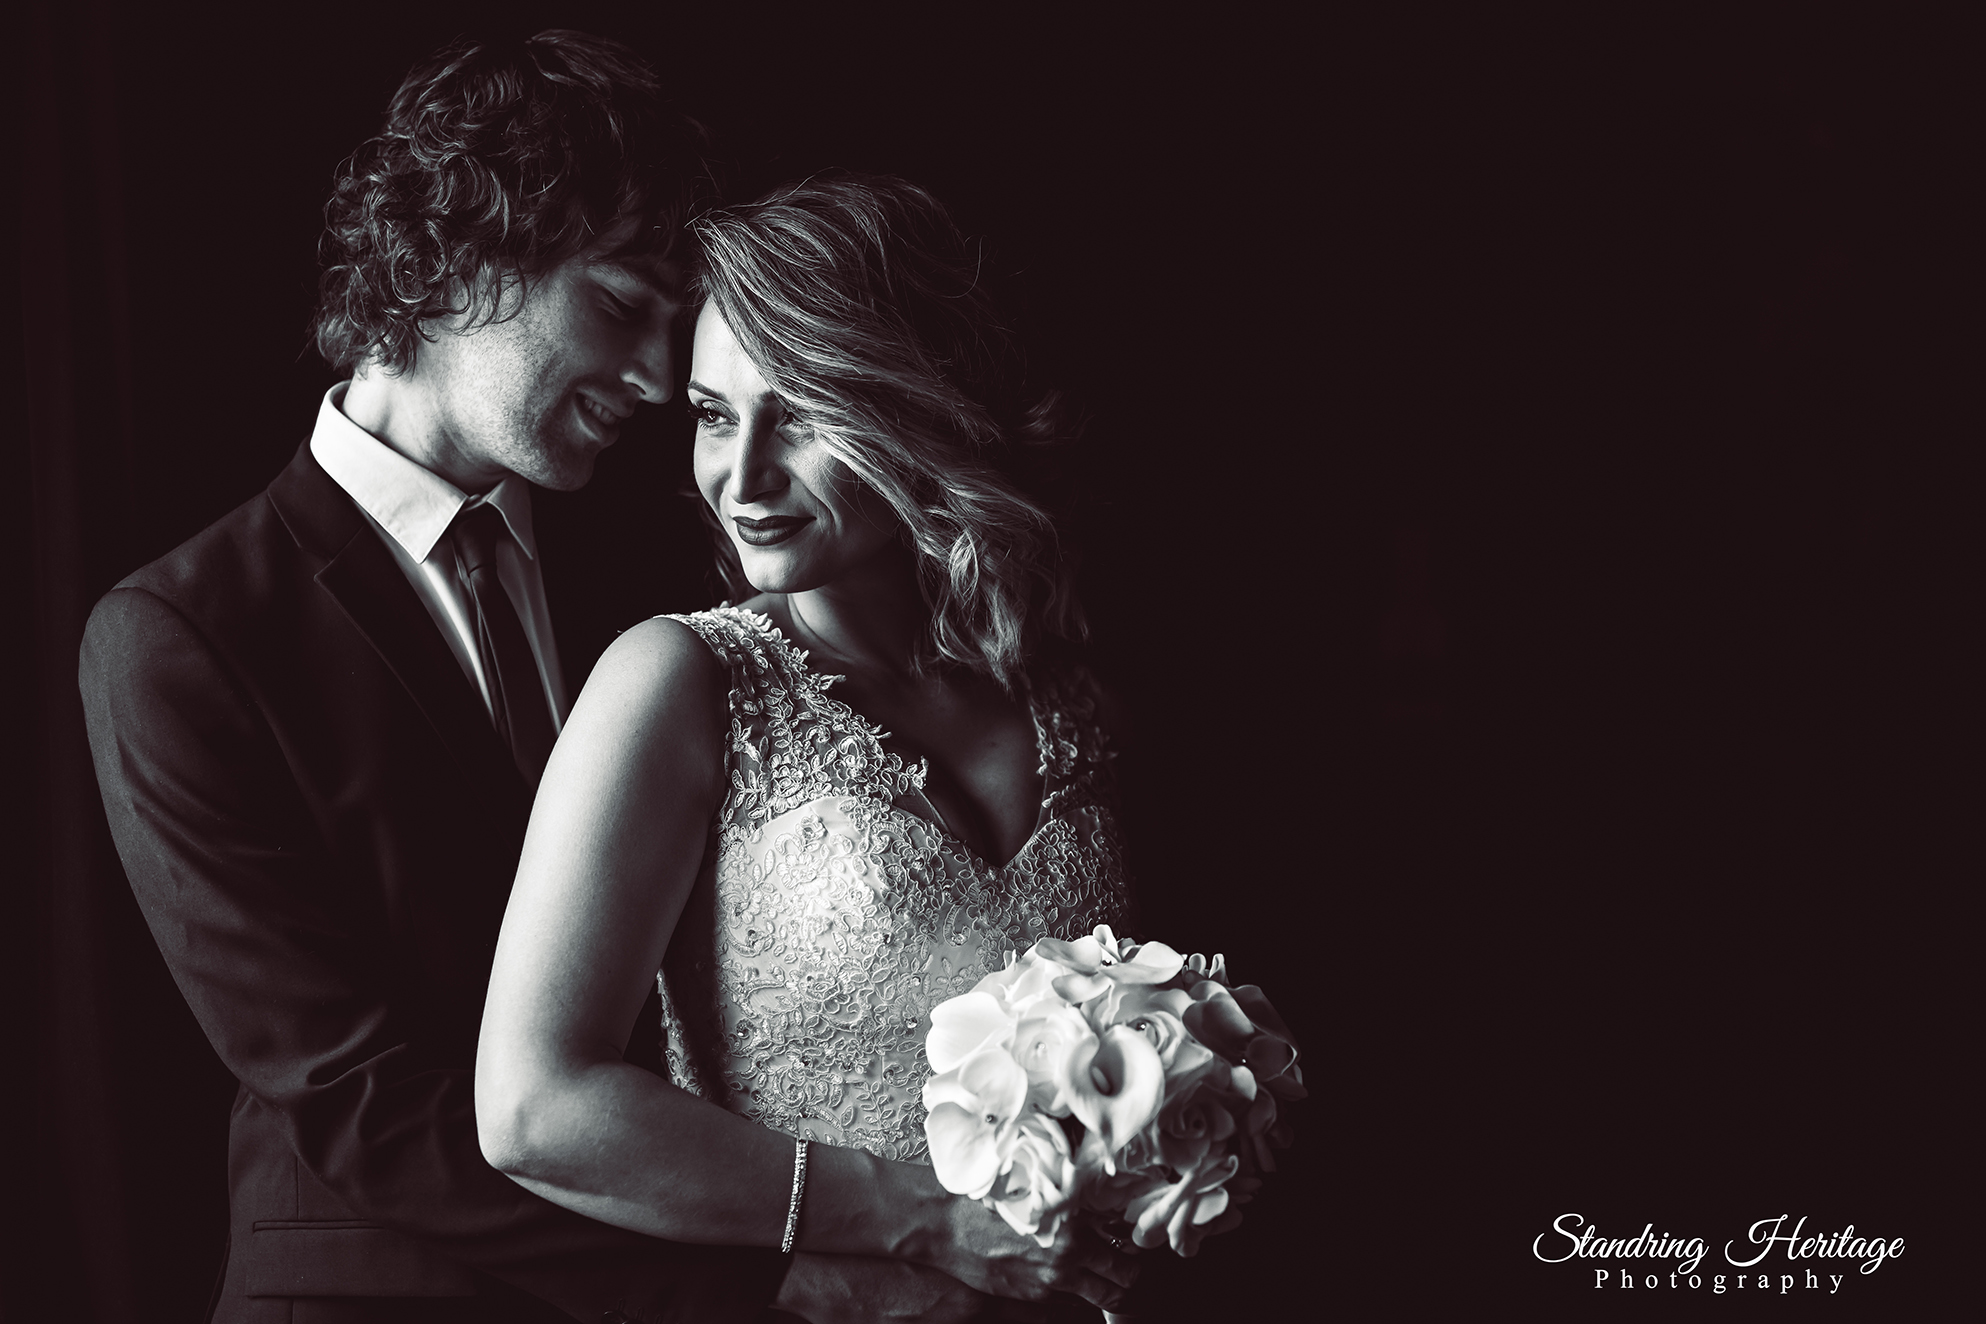 chethams-wedding-photography-manchester-2